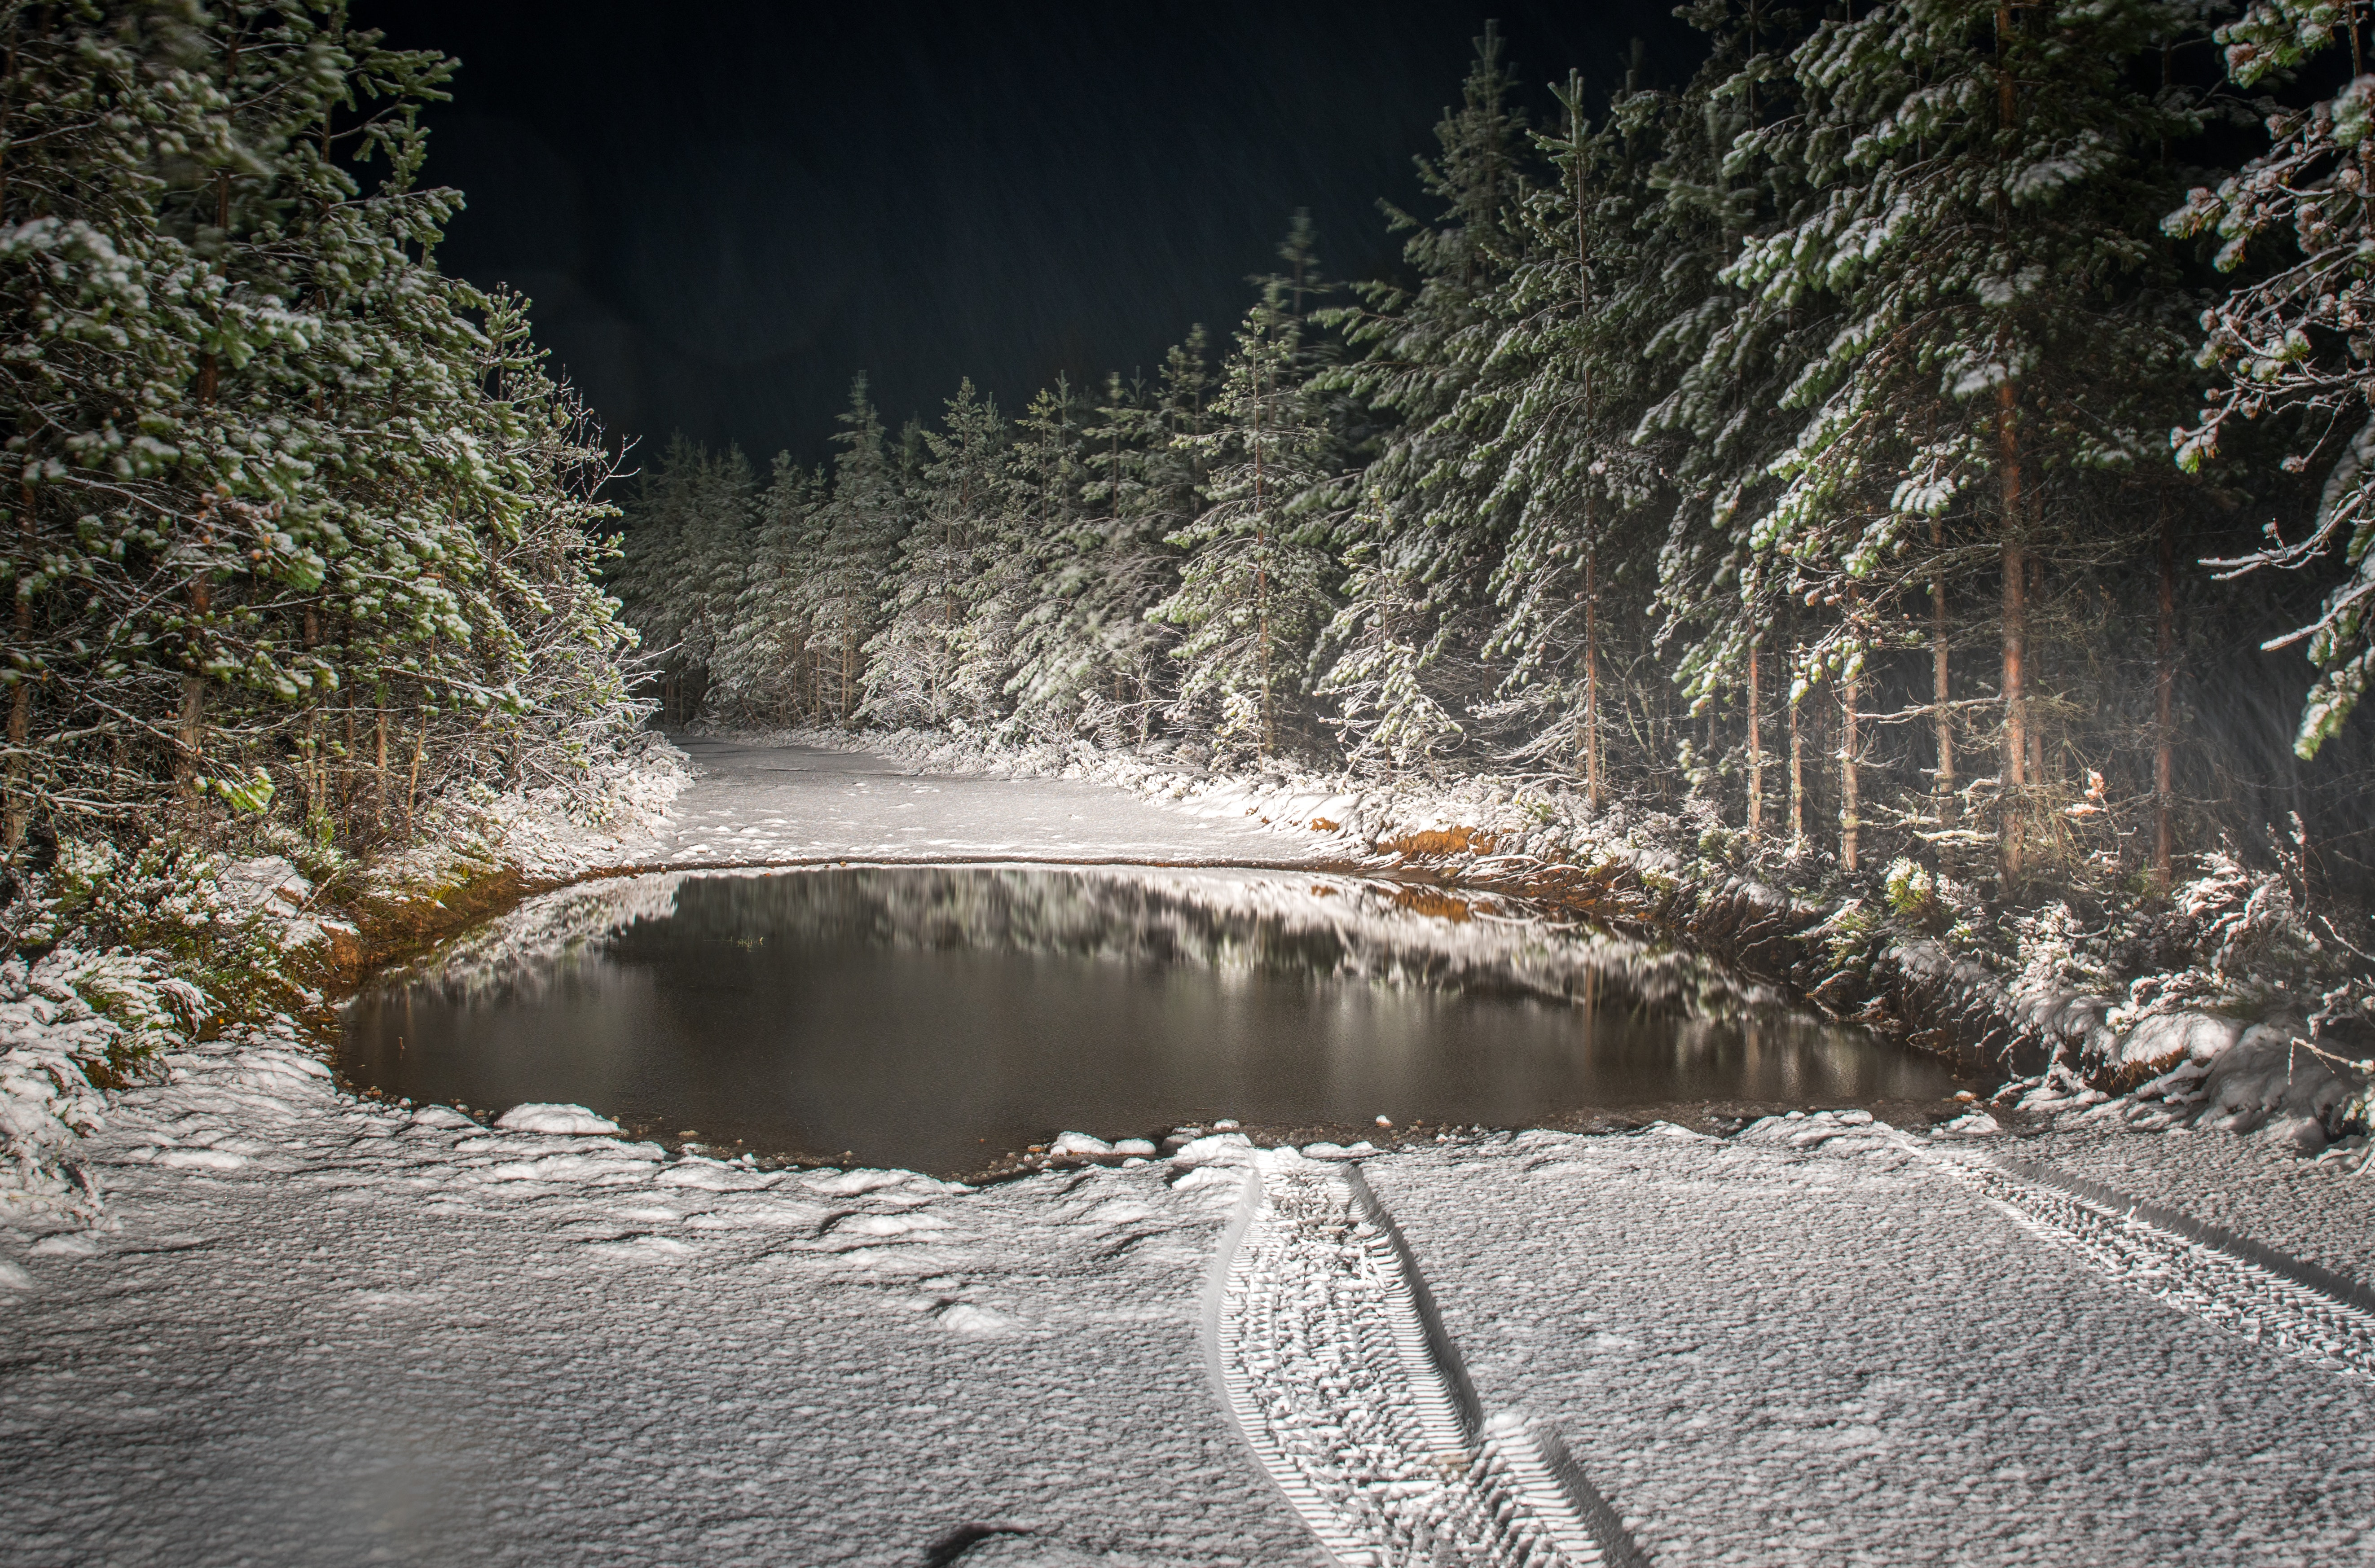 Roadway Filled by Snow Surrounded by Pine Trees Landscape Photography, Cold, Reflection, Winter, Water, HQ Photo